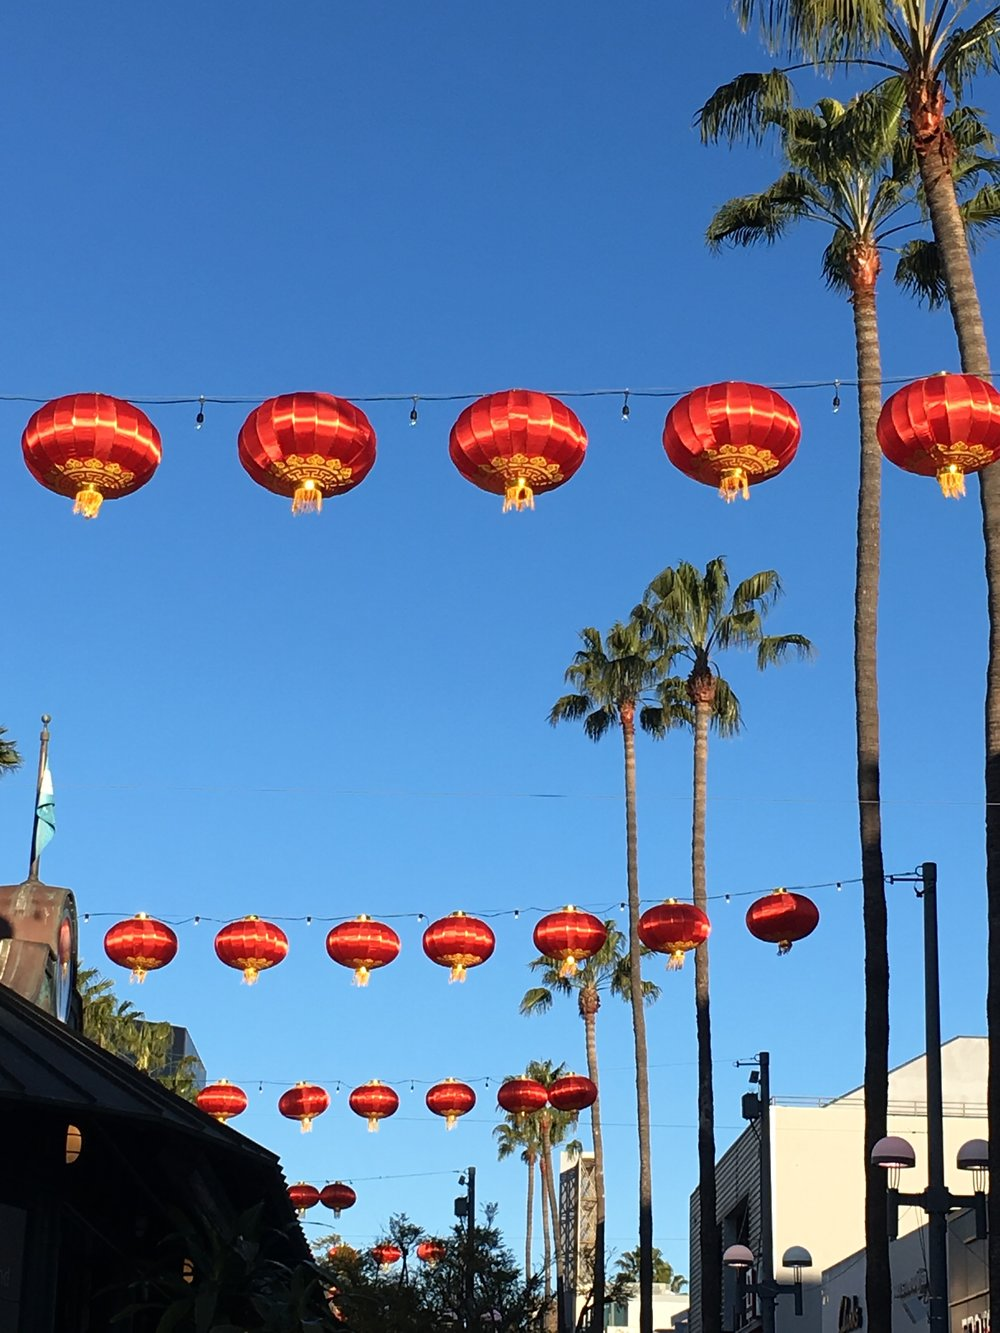 Red and gold lanterns hanging above the street with palm trees in background.